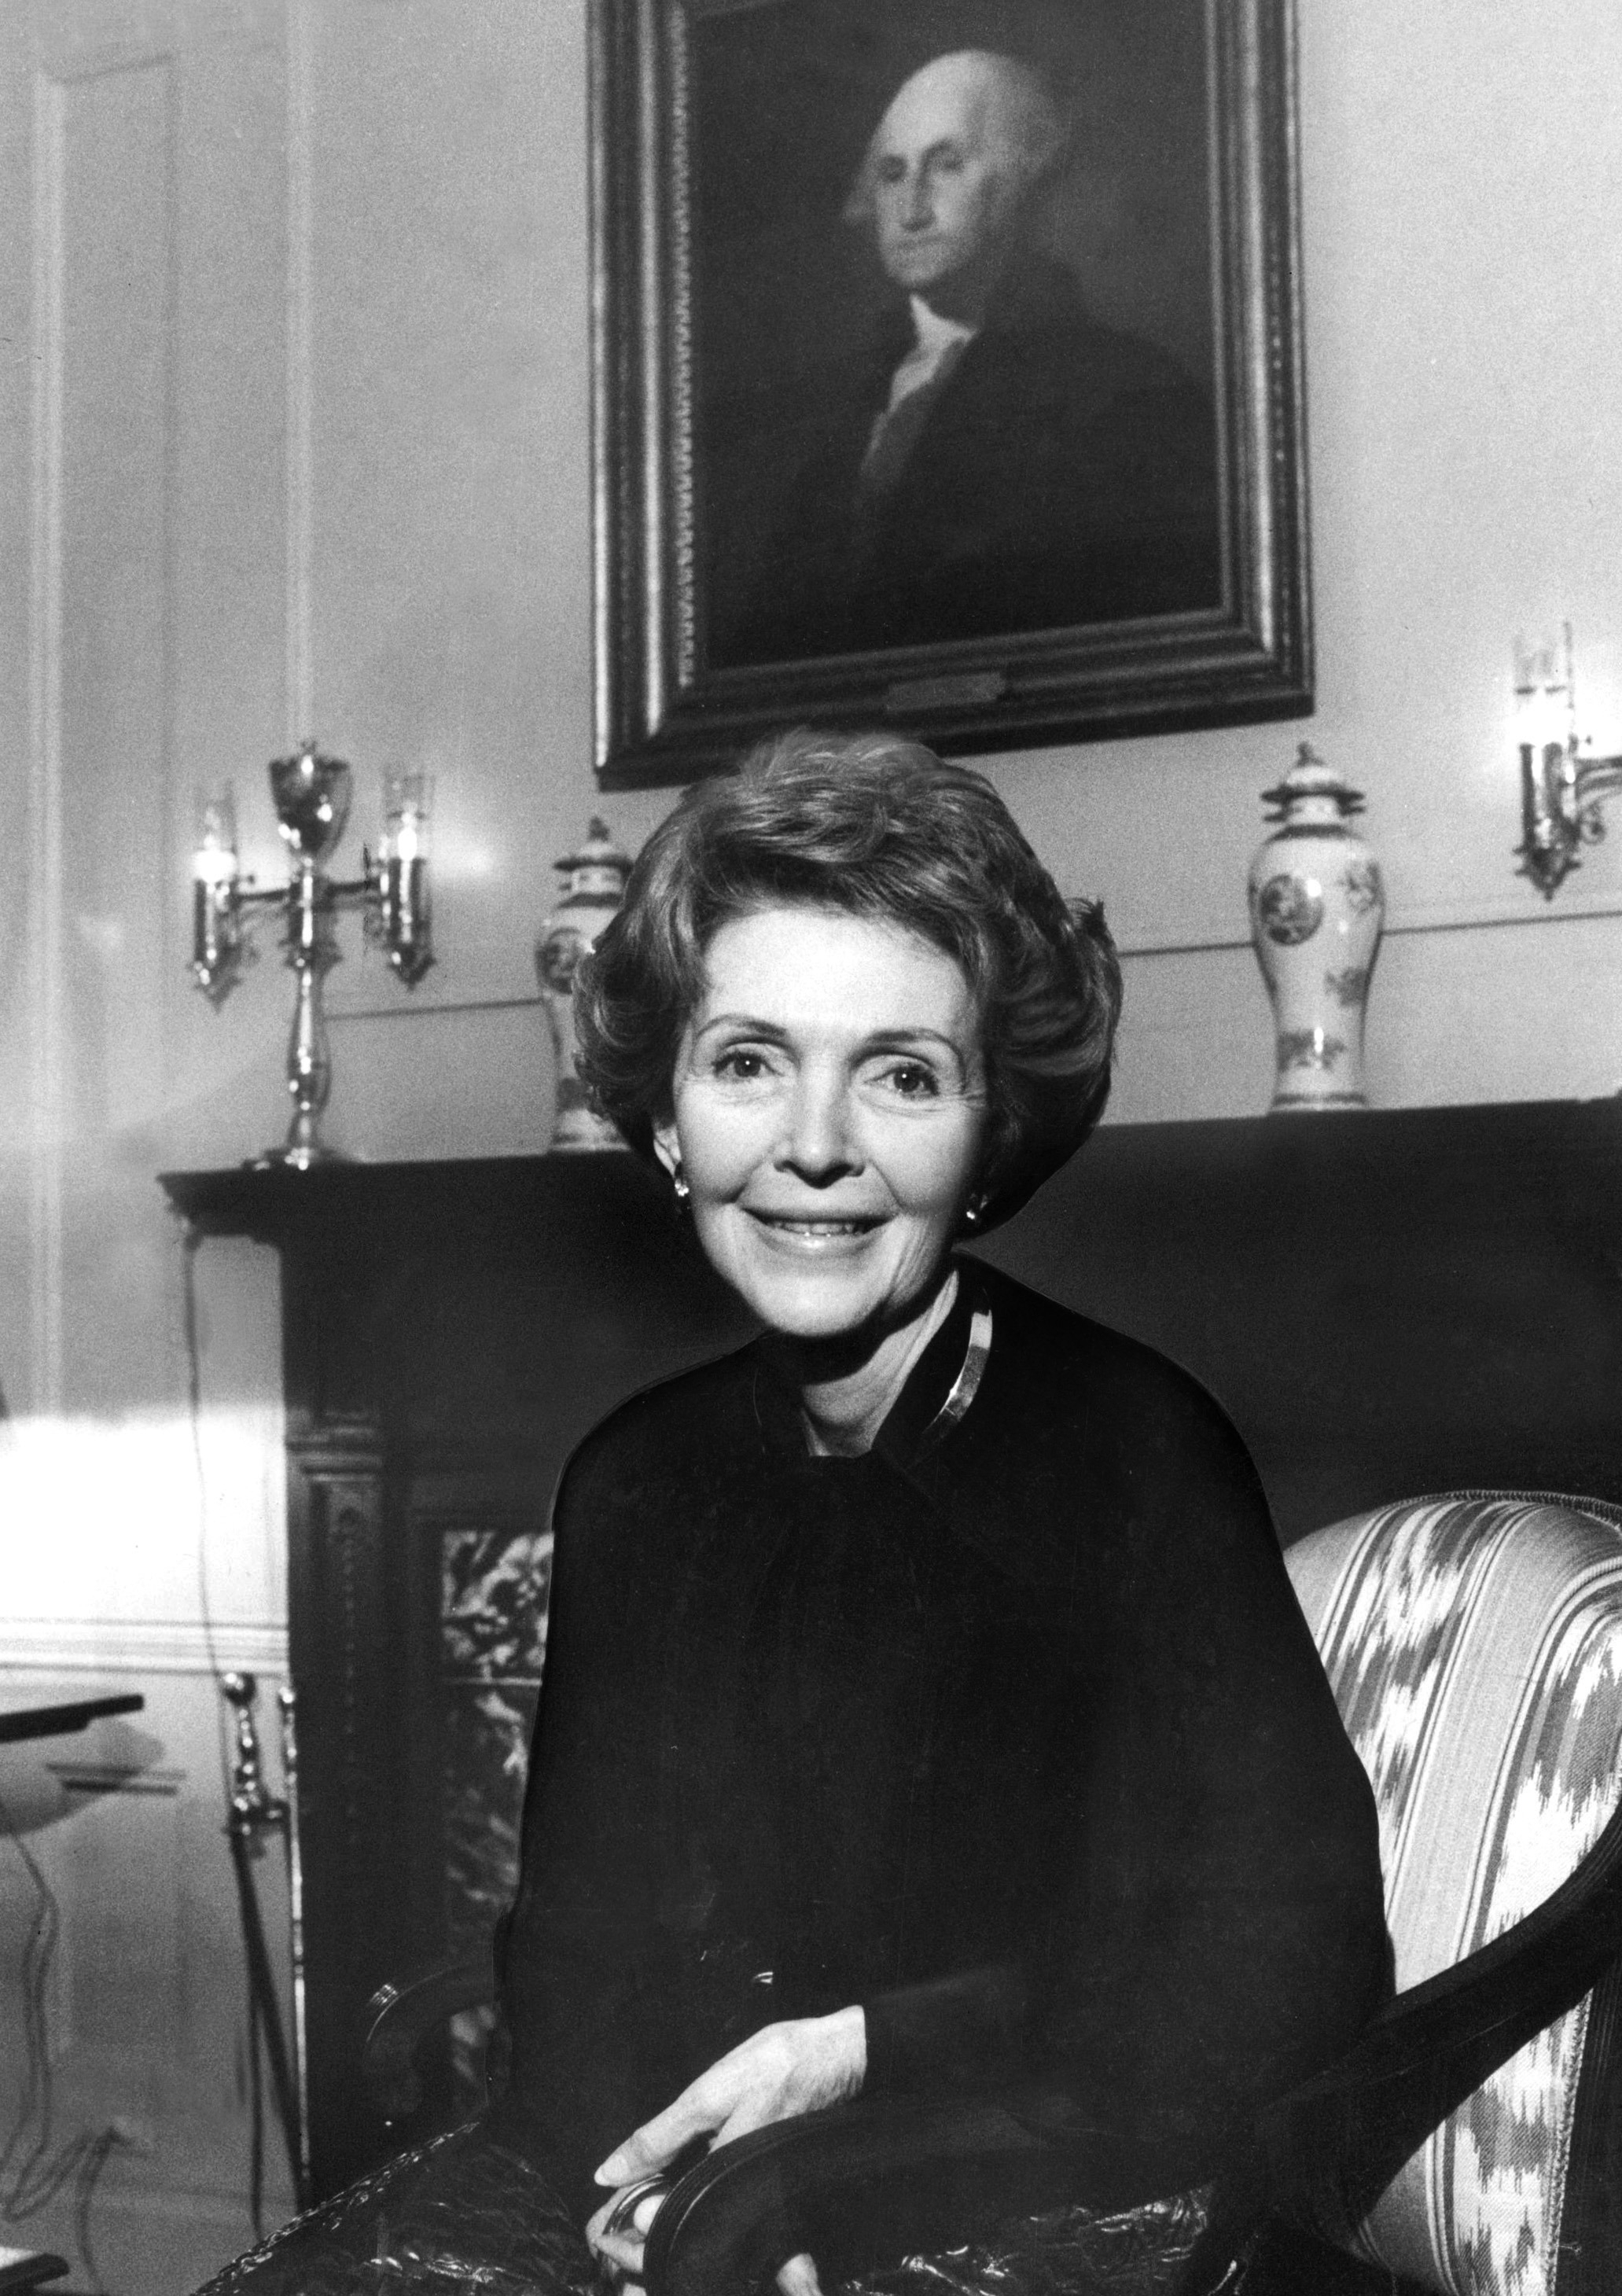 Nancy Reagan during an interview at the White House on Feb. 17, 1982. Reagan, the stylish and influential wife of the 40th president who unabashedly put Ronald Reagan at the center of her life but who became a political figure in her own right, died March 6 at her home in Los Angeles. (New York Times)